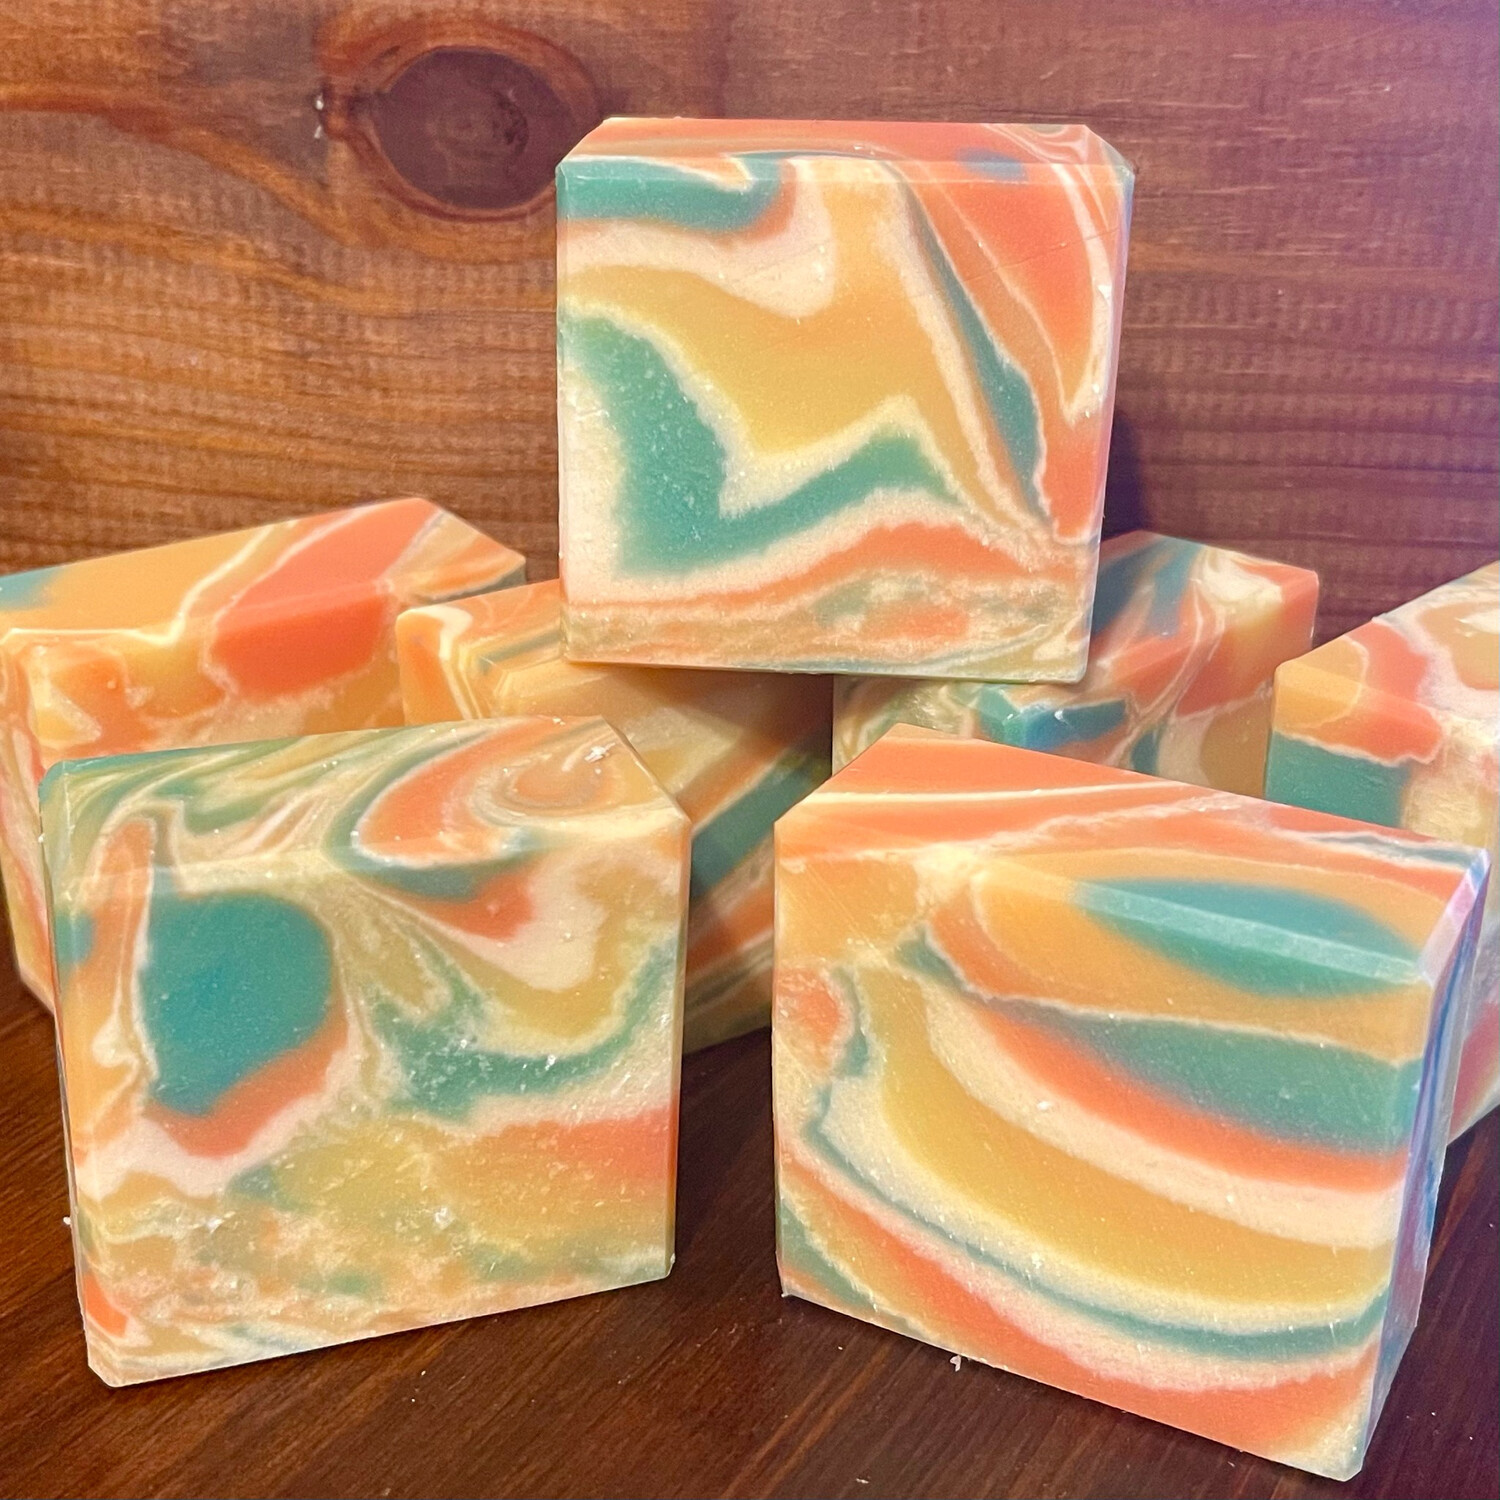 Limited Edition Swirlie Soap - Citrus Madness